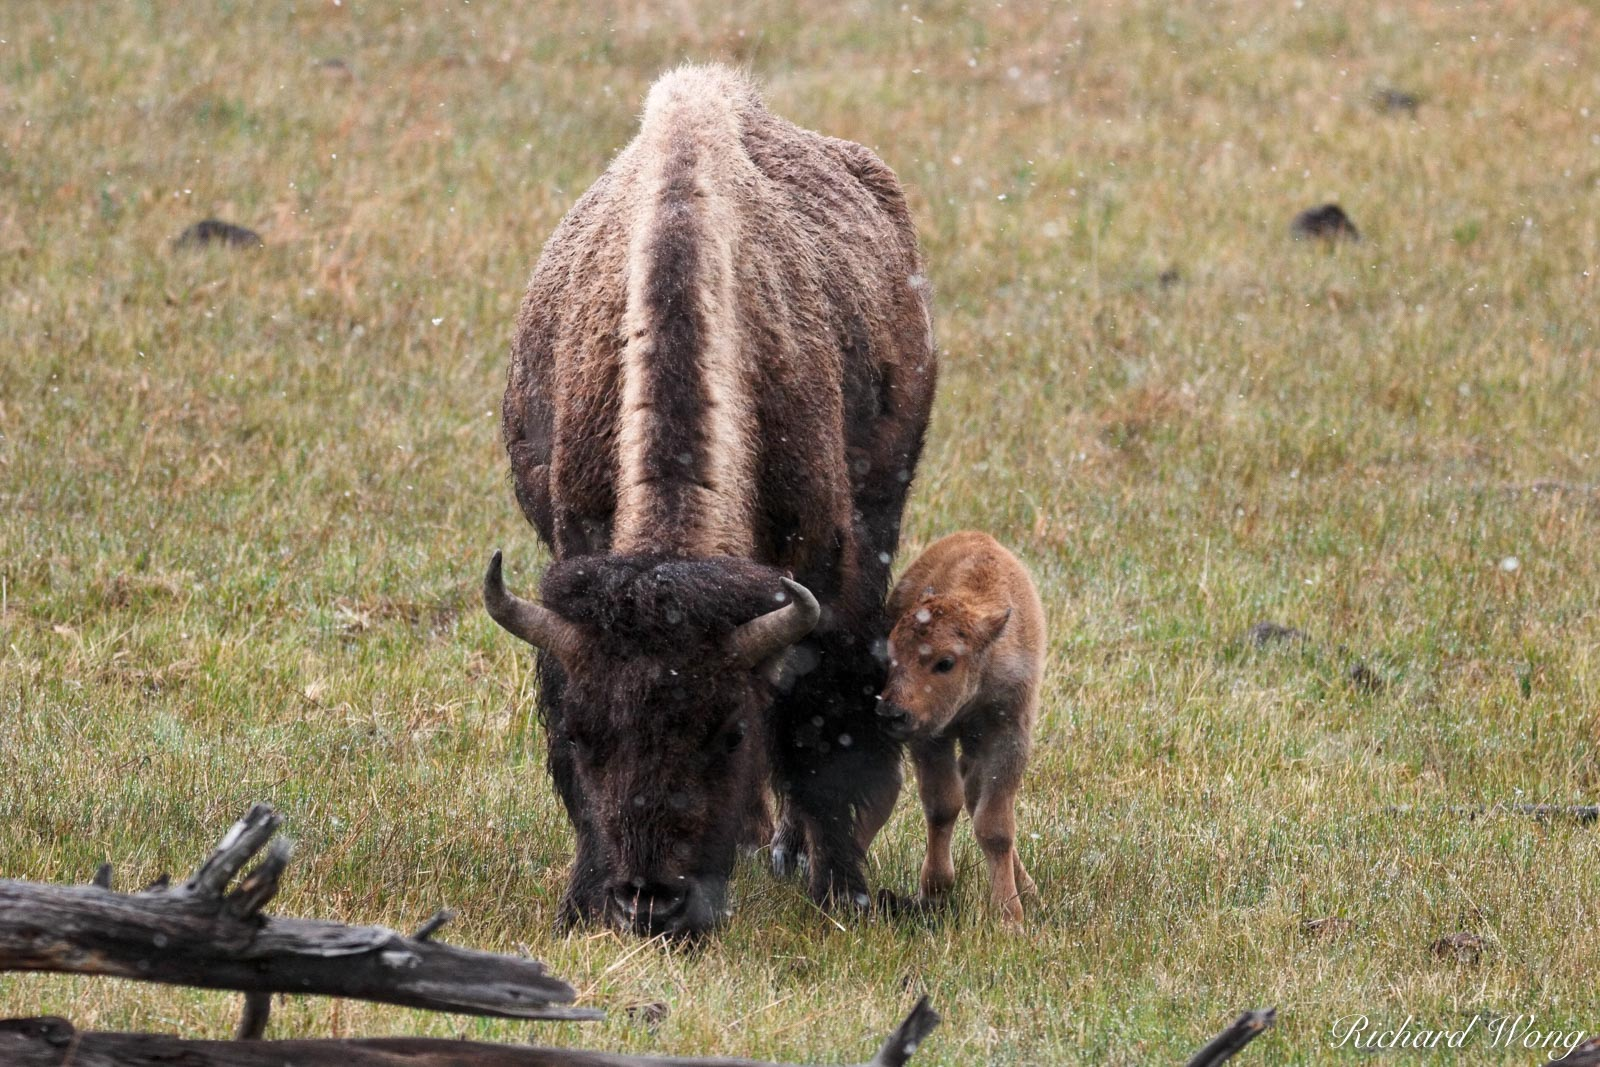 Baby Bison Calf Showing Affection to Mother, Yellowstone National Park, Wyoming As the snowy winter gives way to spring, there...